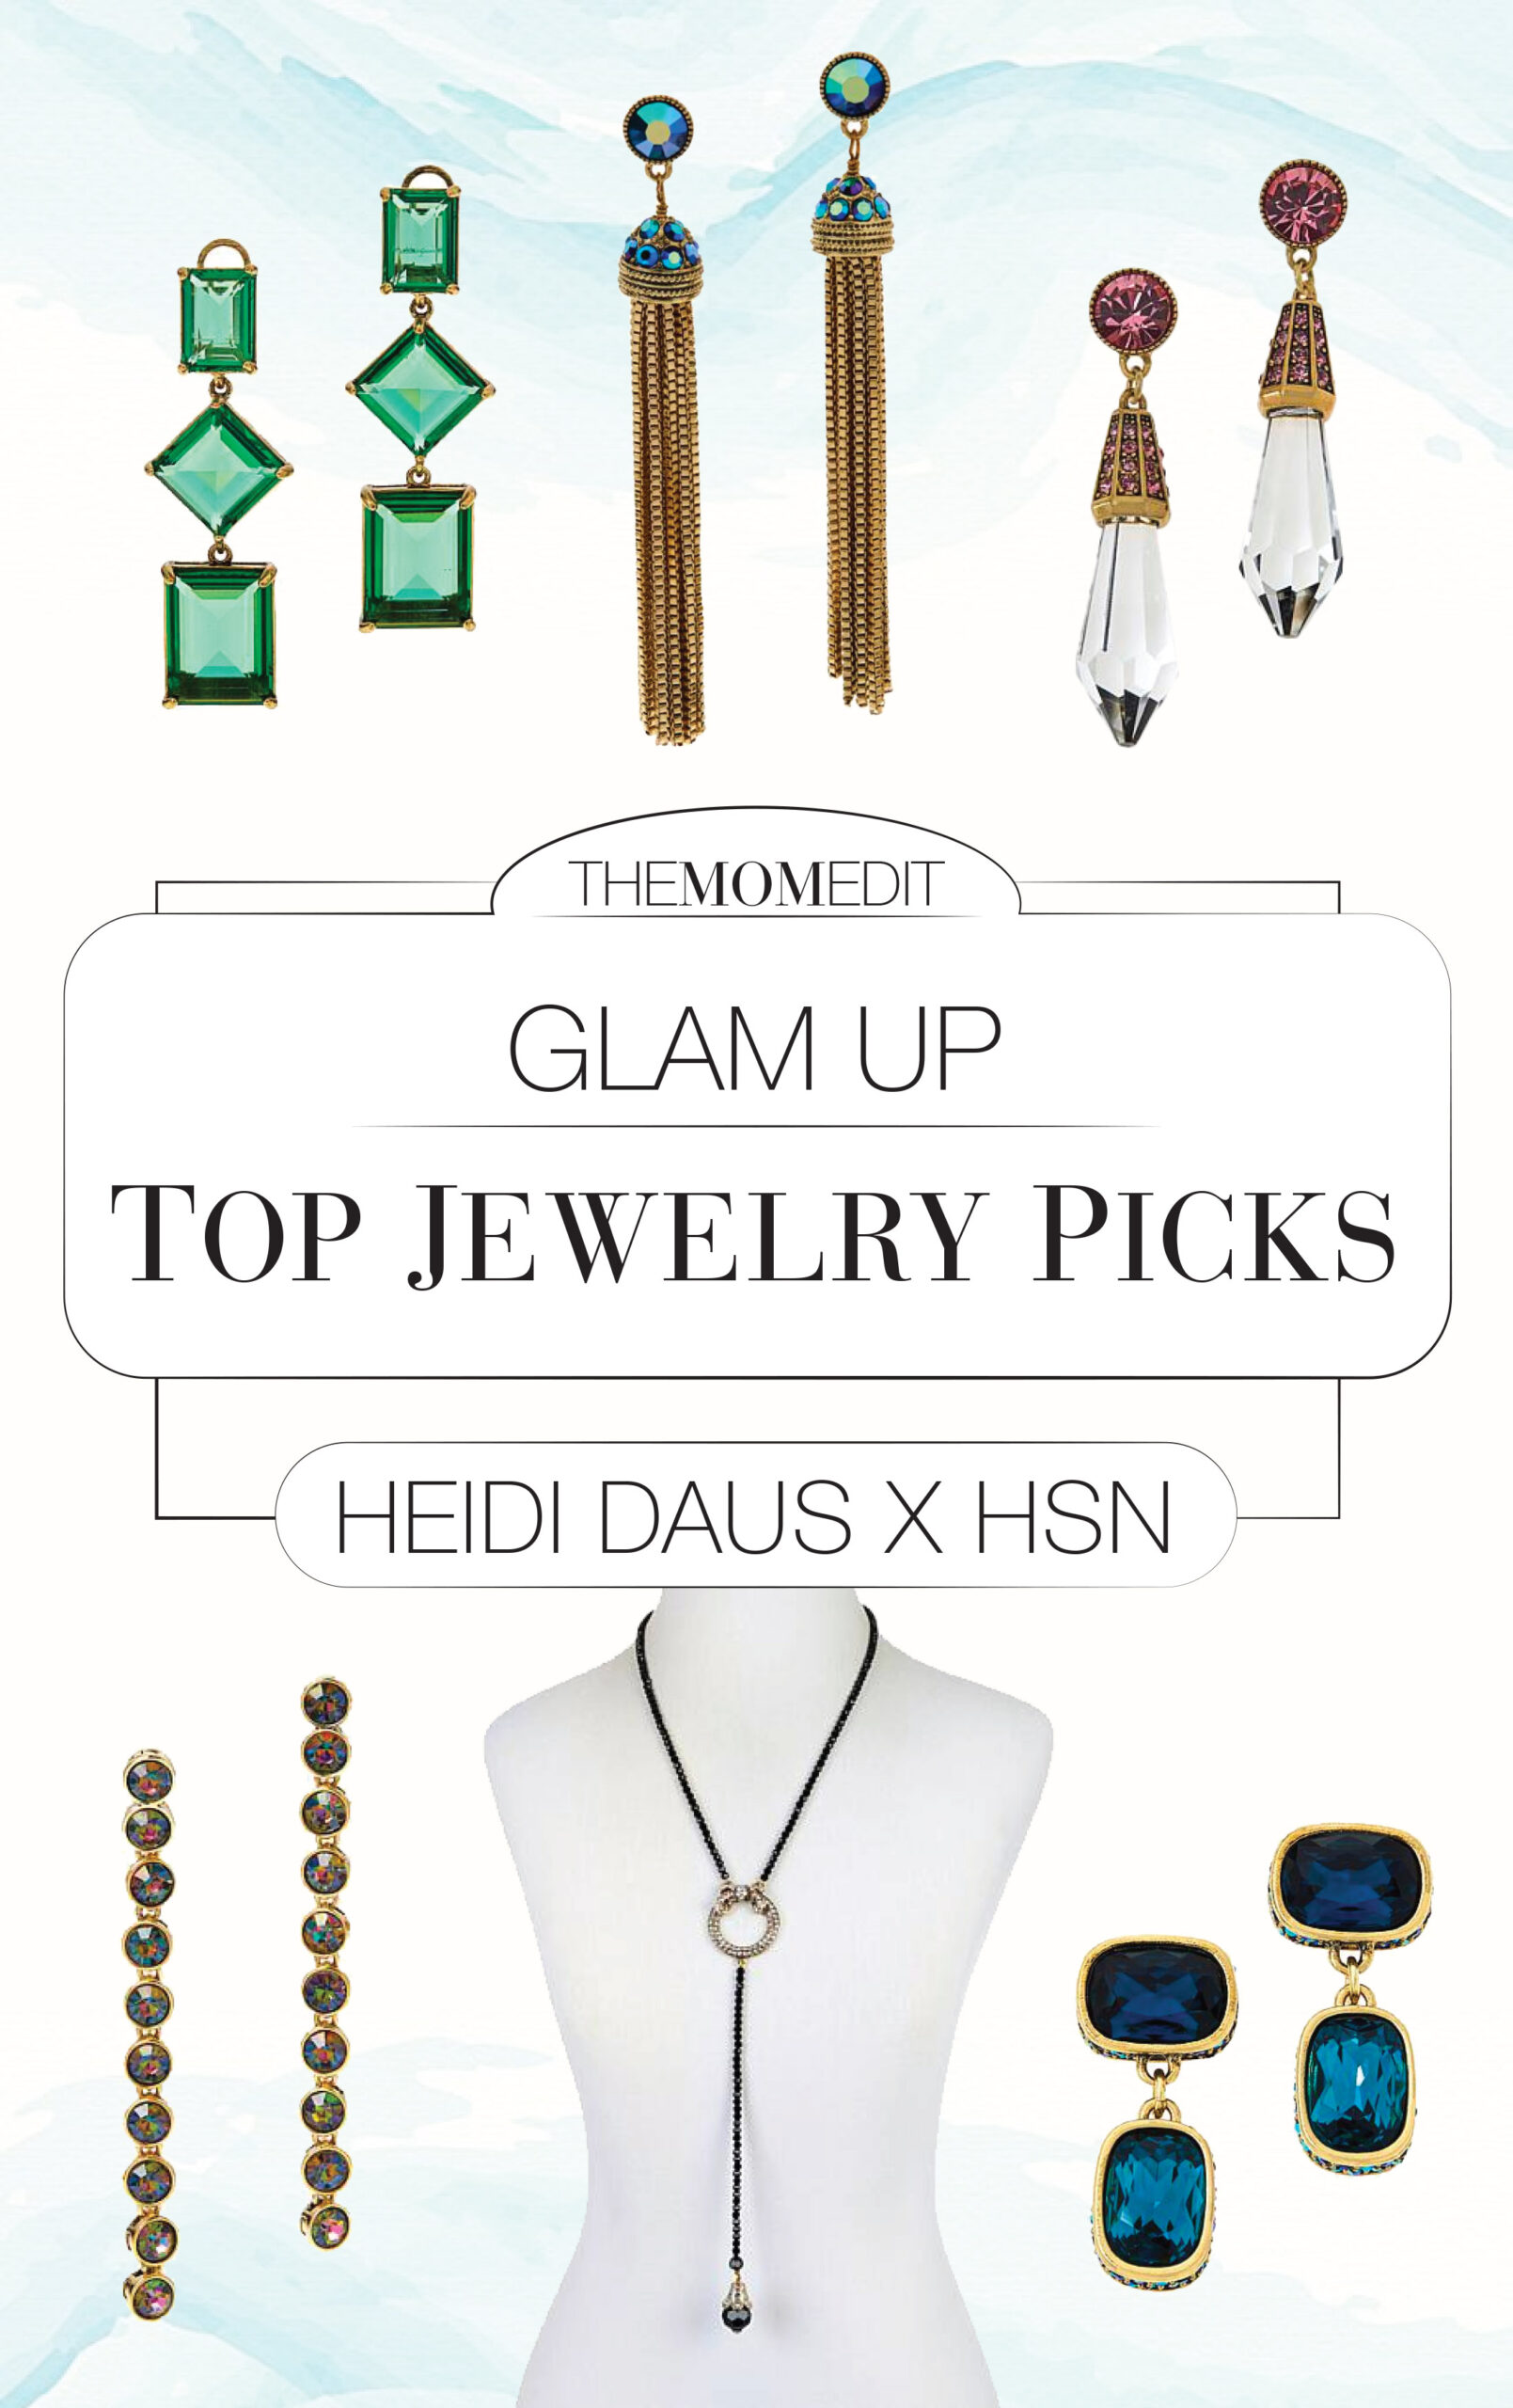 Fashion jewelry from Heidi Daus (via HSN & a coupon code) is a fab way to glam up Zoom sweaters or ant outfit. Wearable art for the virtual life? YES.